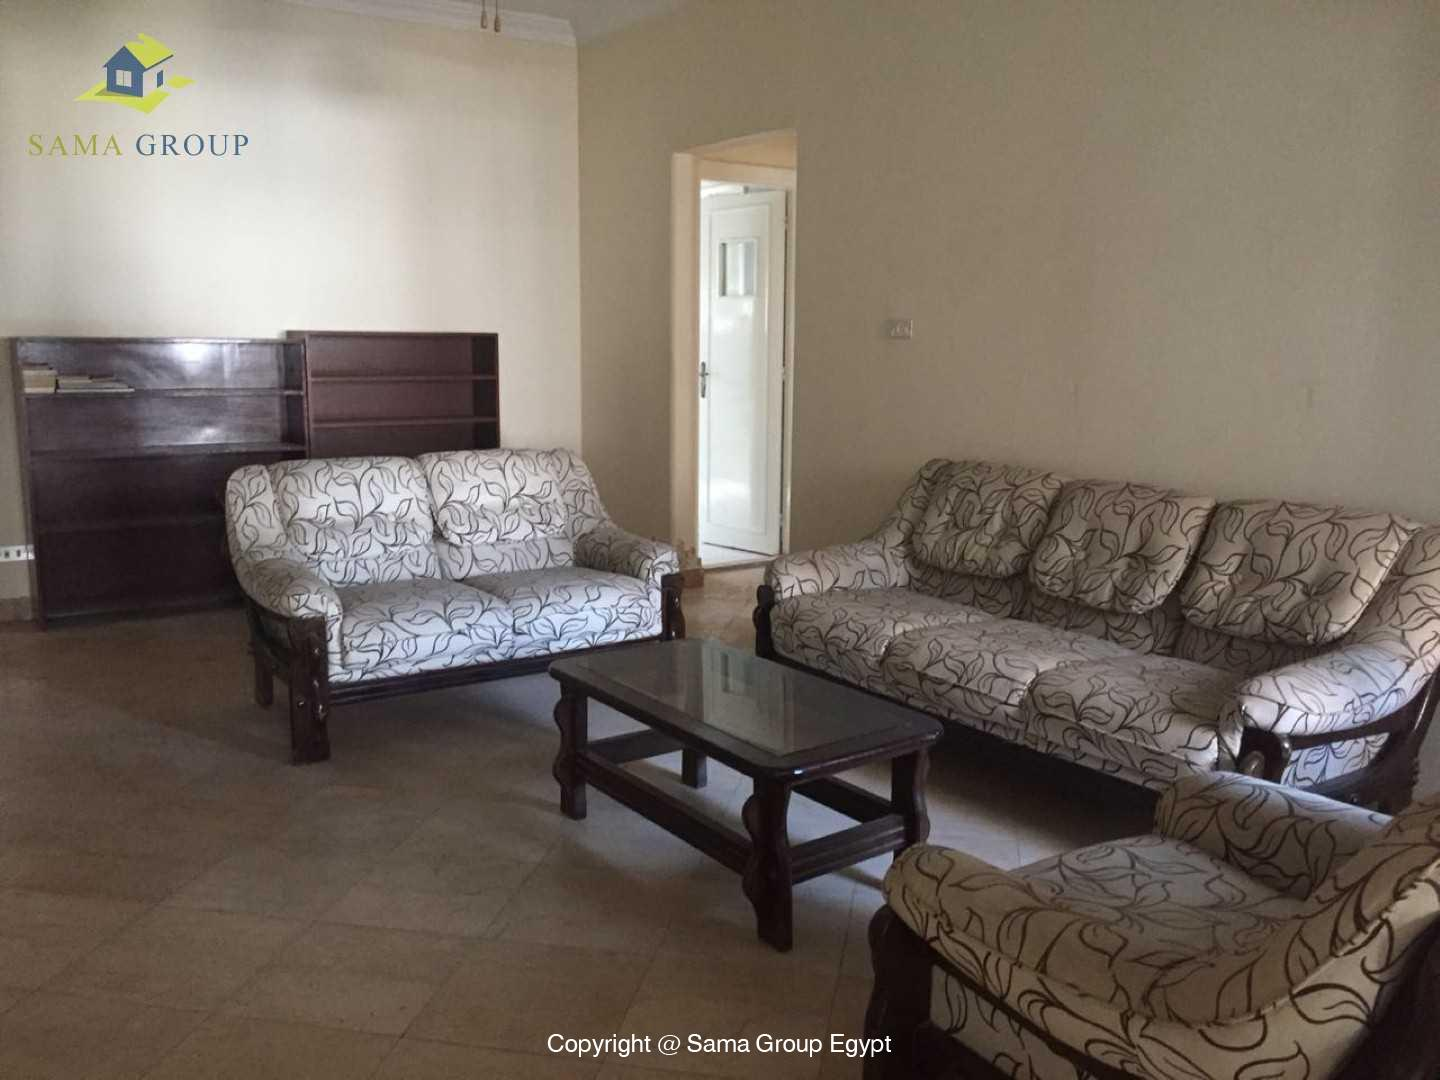 Furnished Apartment For Rent In Maadi Sarayat,Furnished,Apartment NO #7